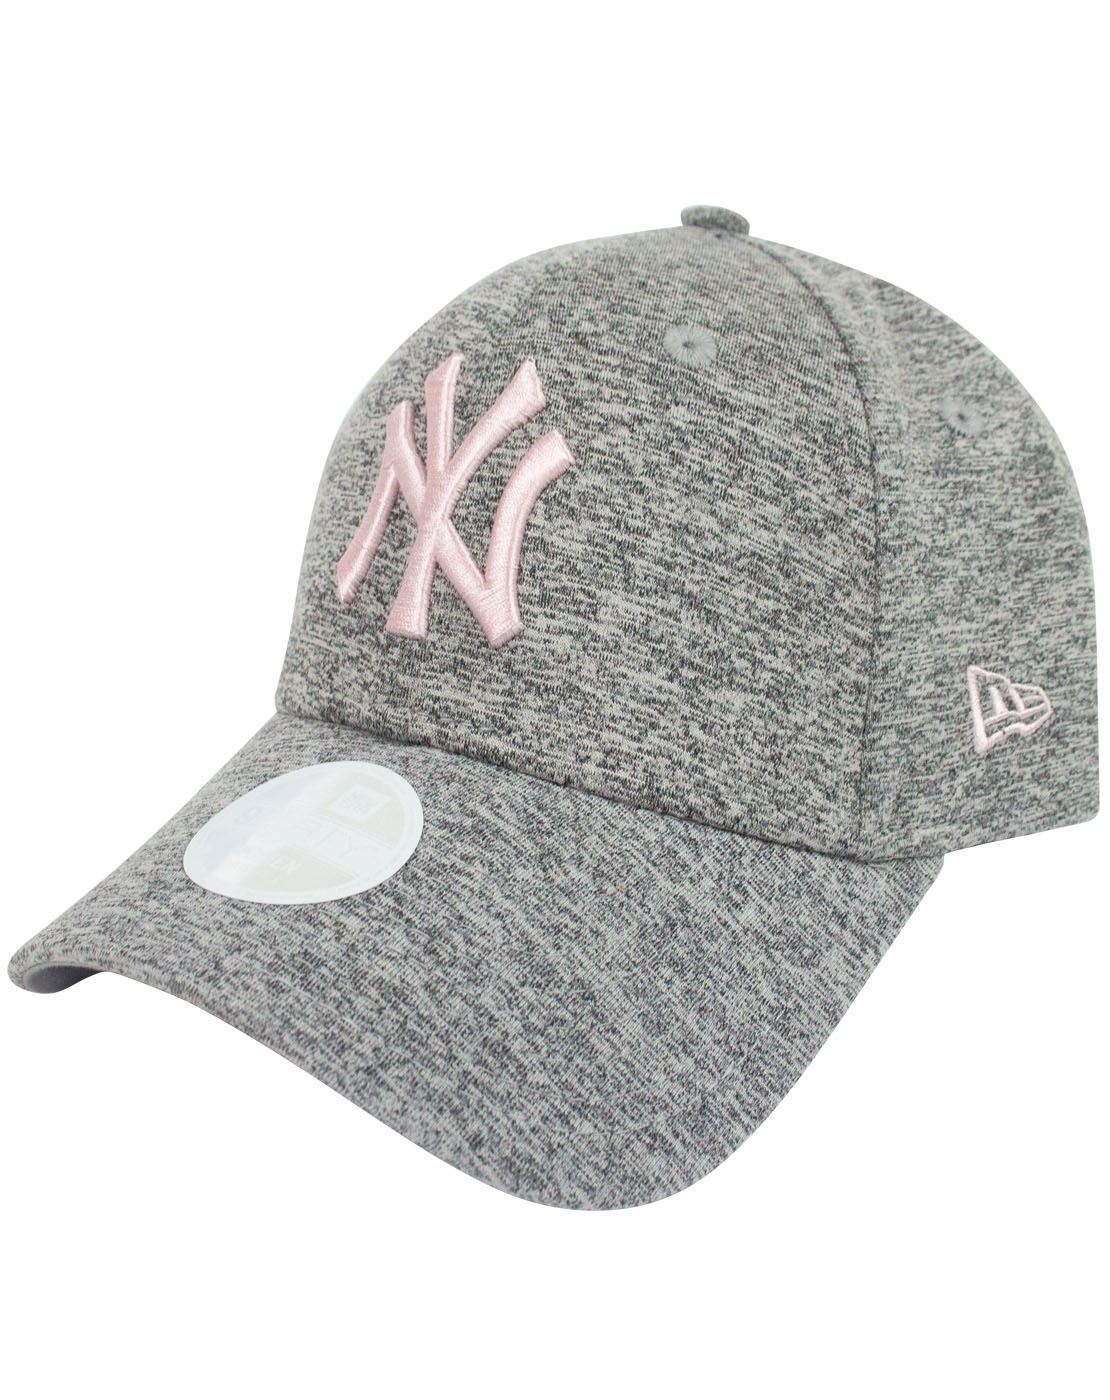 2b61dff548f New Era 9Forty MLB New York Yankees Tech Jersey Pink Women s Cap – Vanilla  Underground